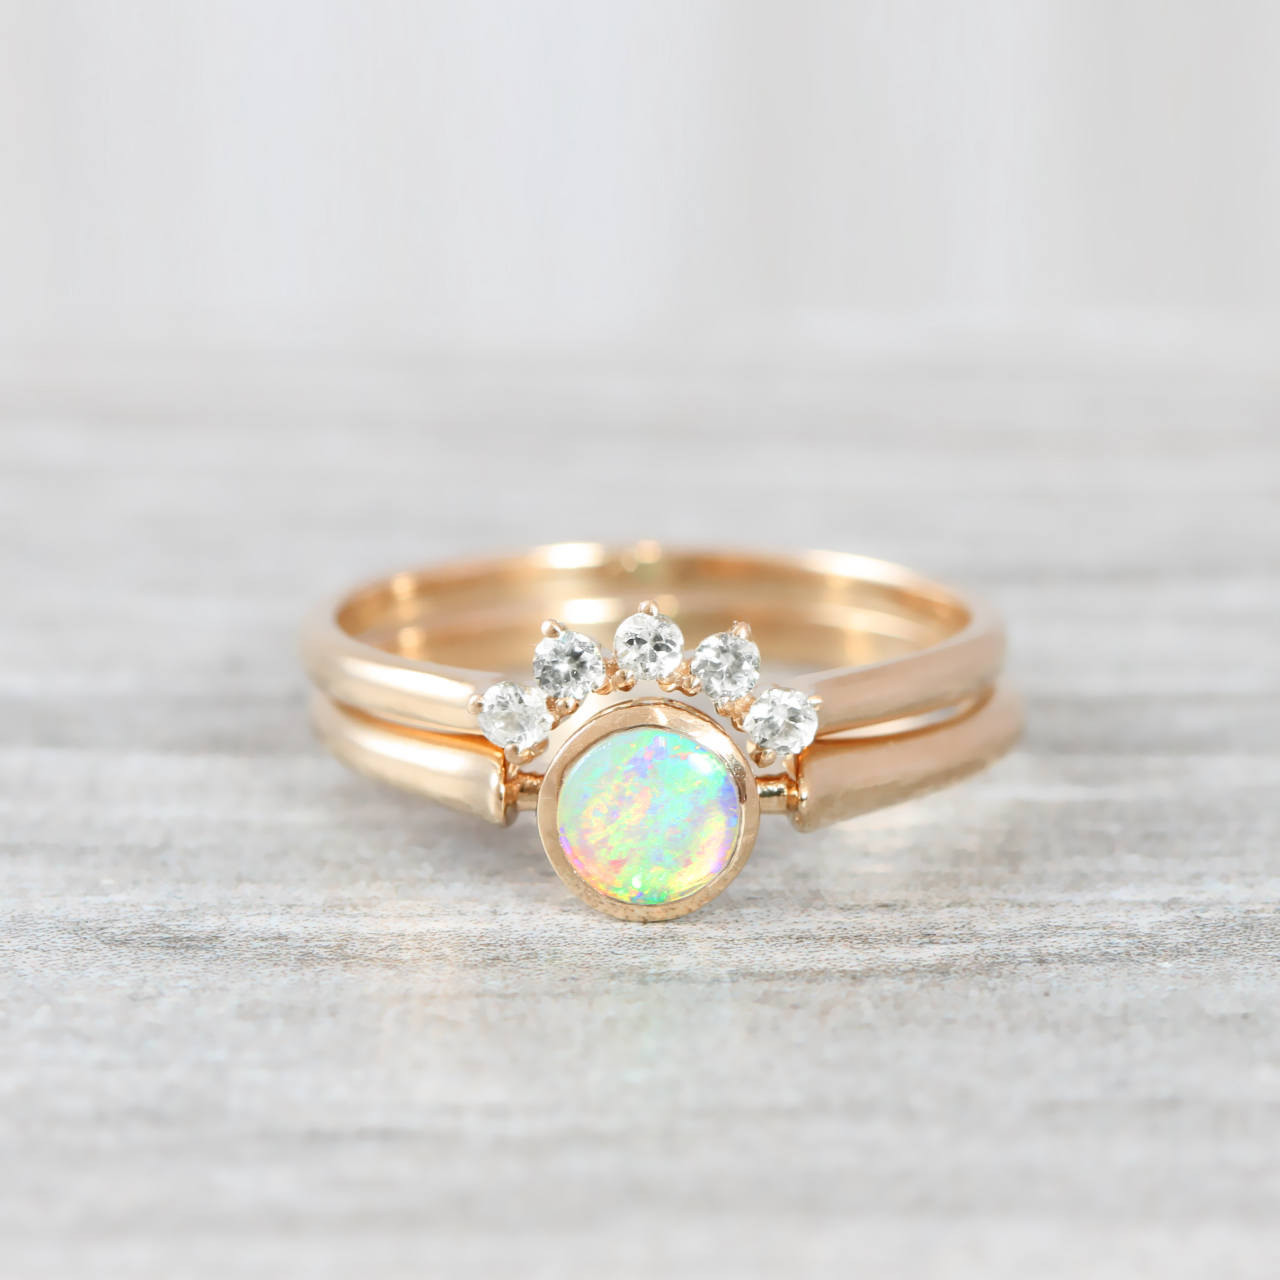 Wedding Ring Set.Opal And Diamond Engagement Wedding Ring Set Handmade In Rose White Yellow Gold Art Deco Inspired Thin Petite Band Minimal Simple Unique